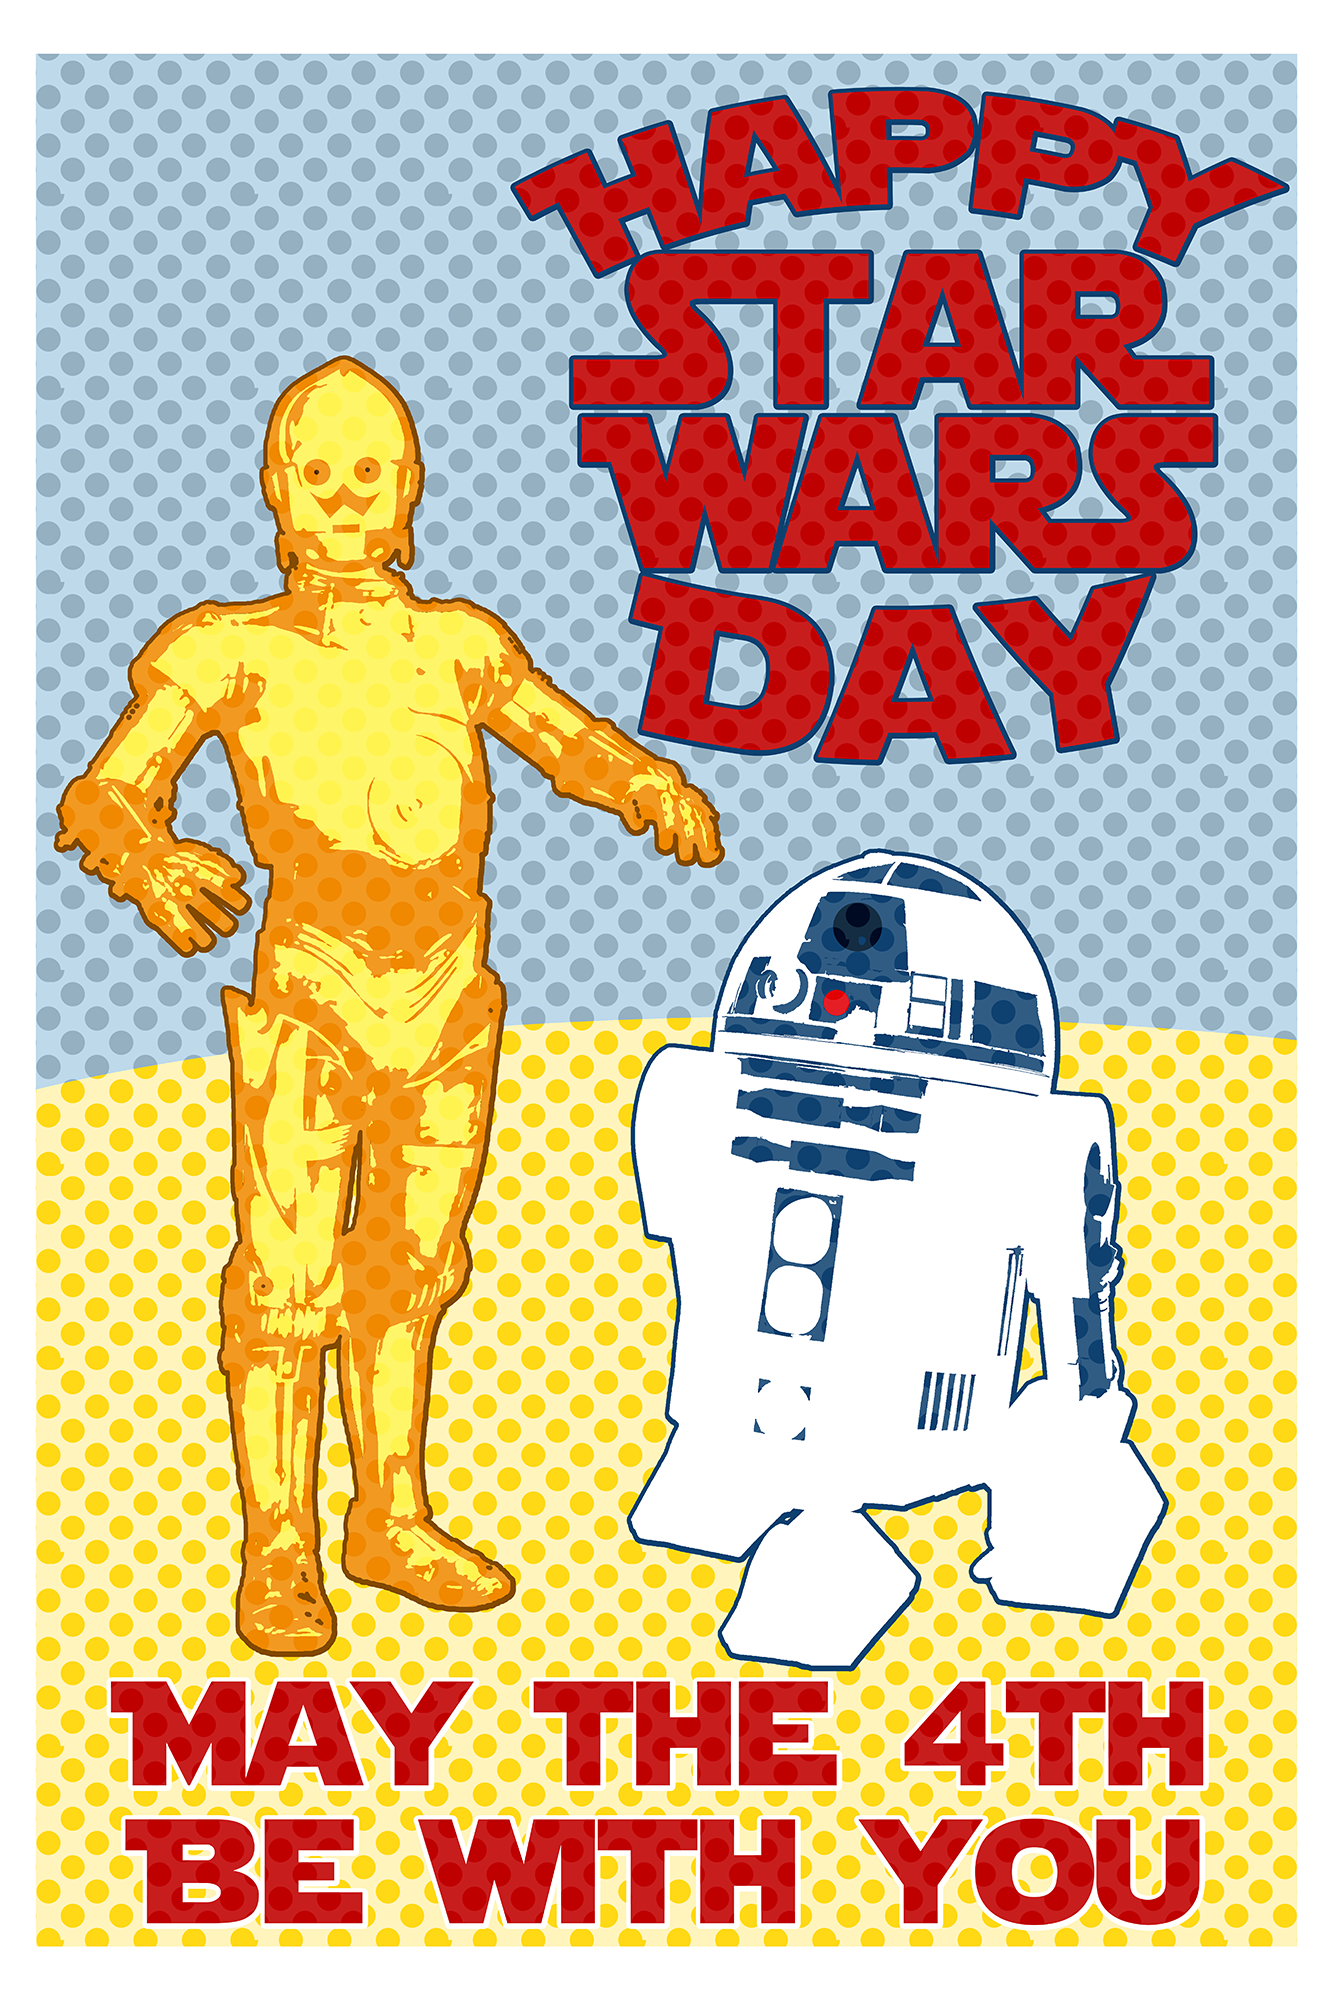 Happy Star Wars Day May The 4th Be With You Starwarsday Maythe4thbewithyou Maythefourthbewithyou Happy Star Wars Day Star Wars Star Wars Day